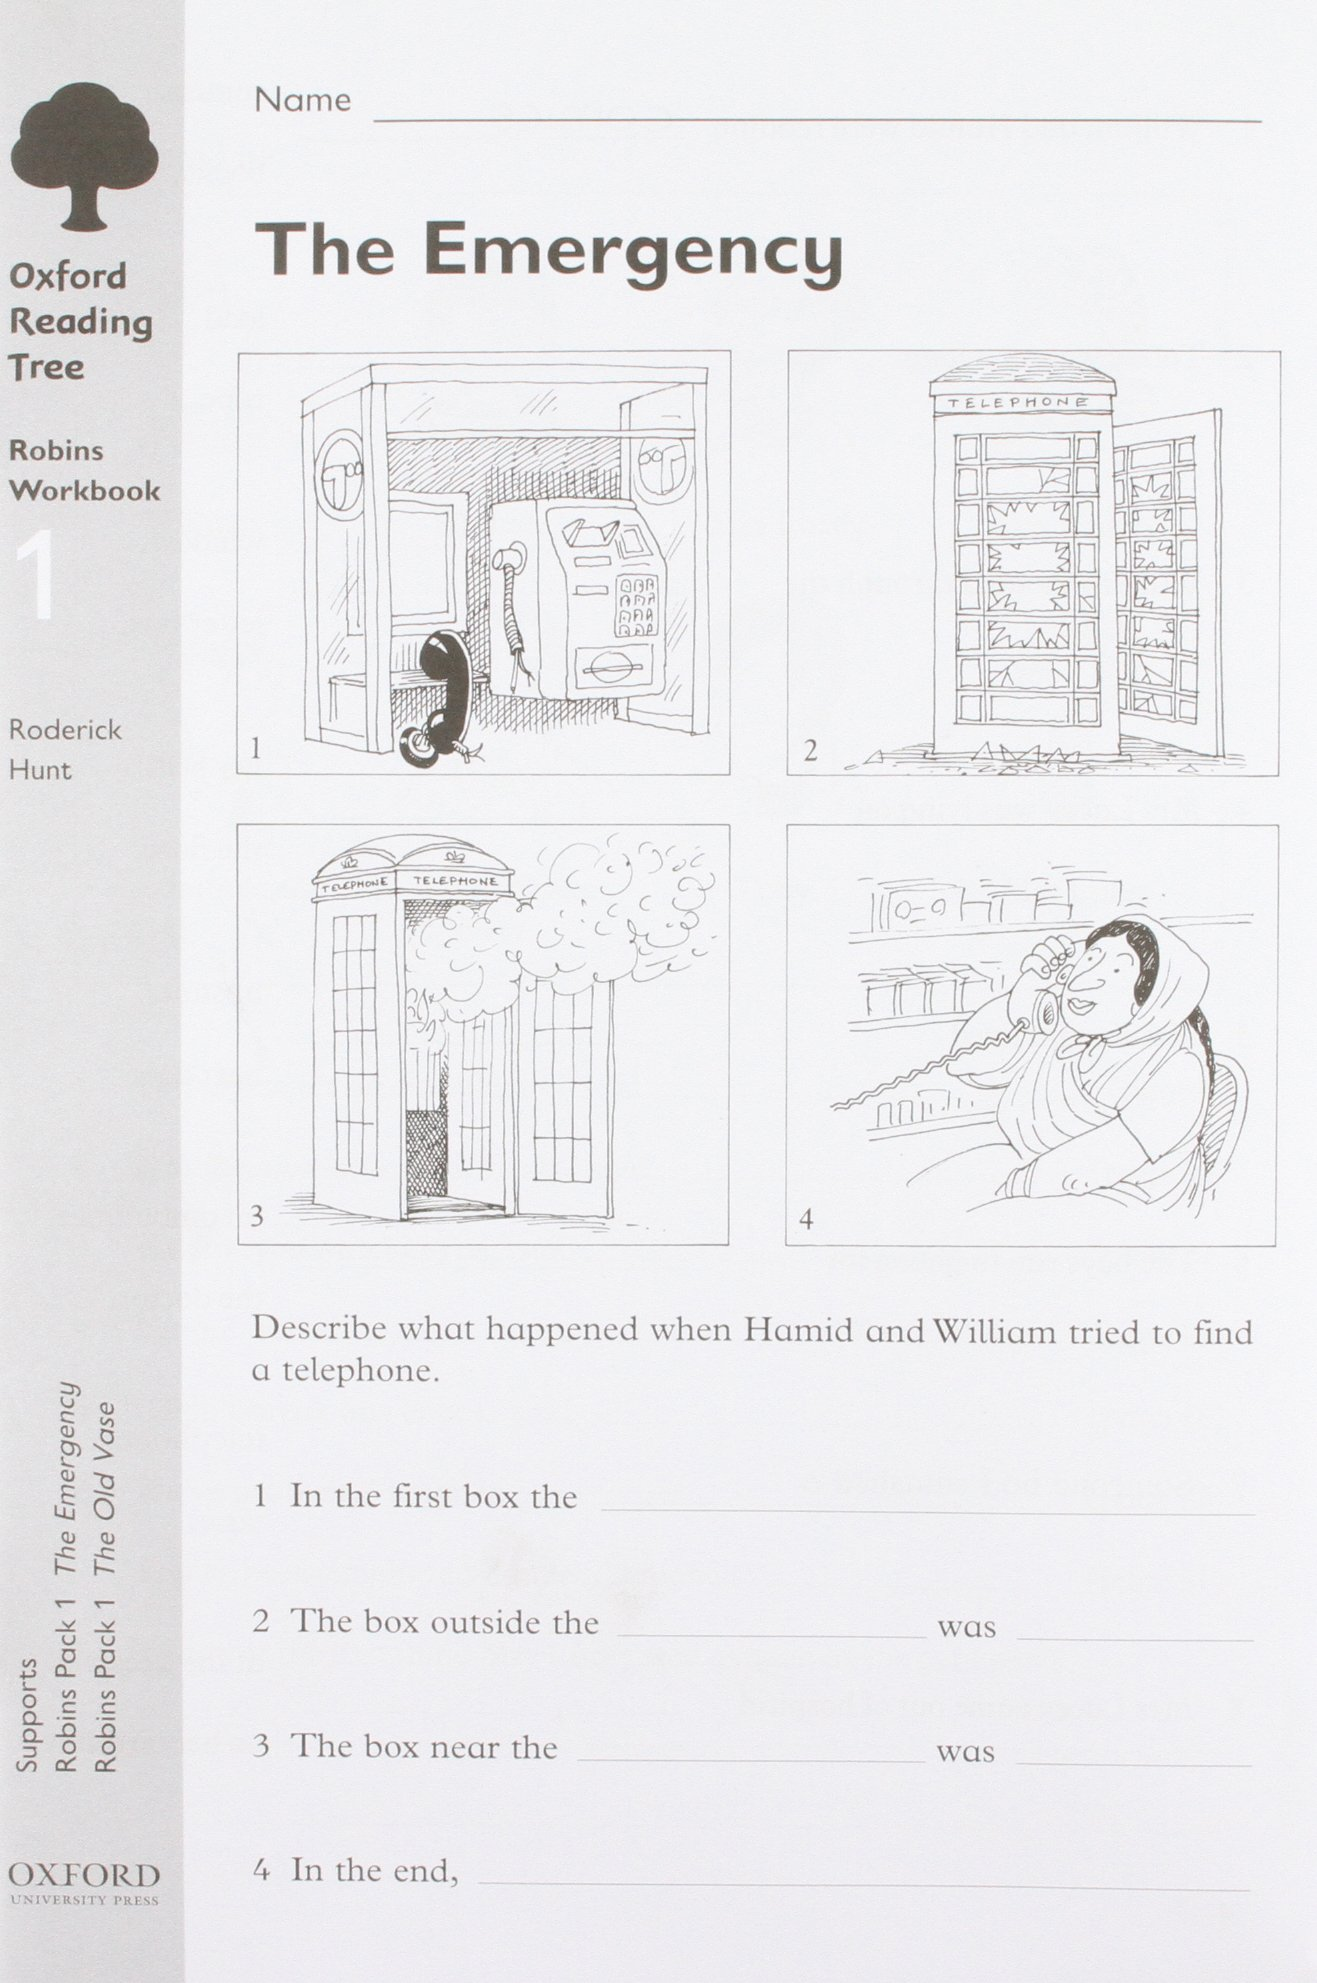 Read Online Oxford Reading Tree: Stage 6-10: Robins: Workbook 1: the Emergency and the Old Vase (Pack of 30) pdf